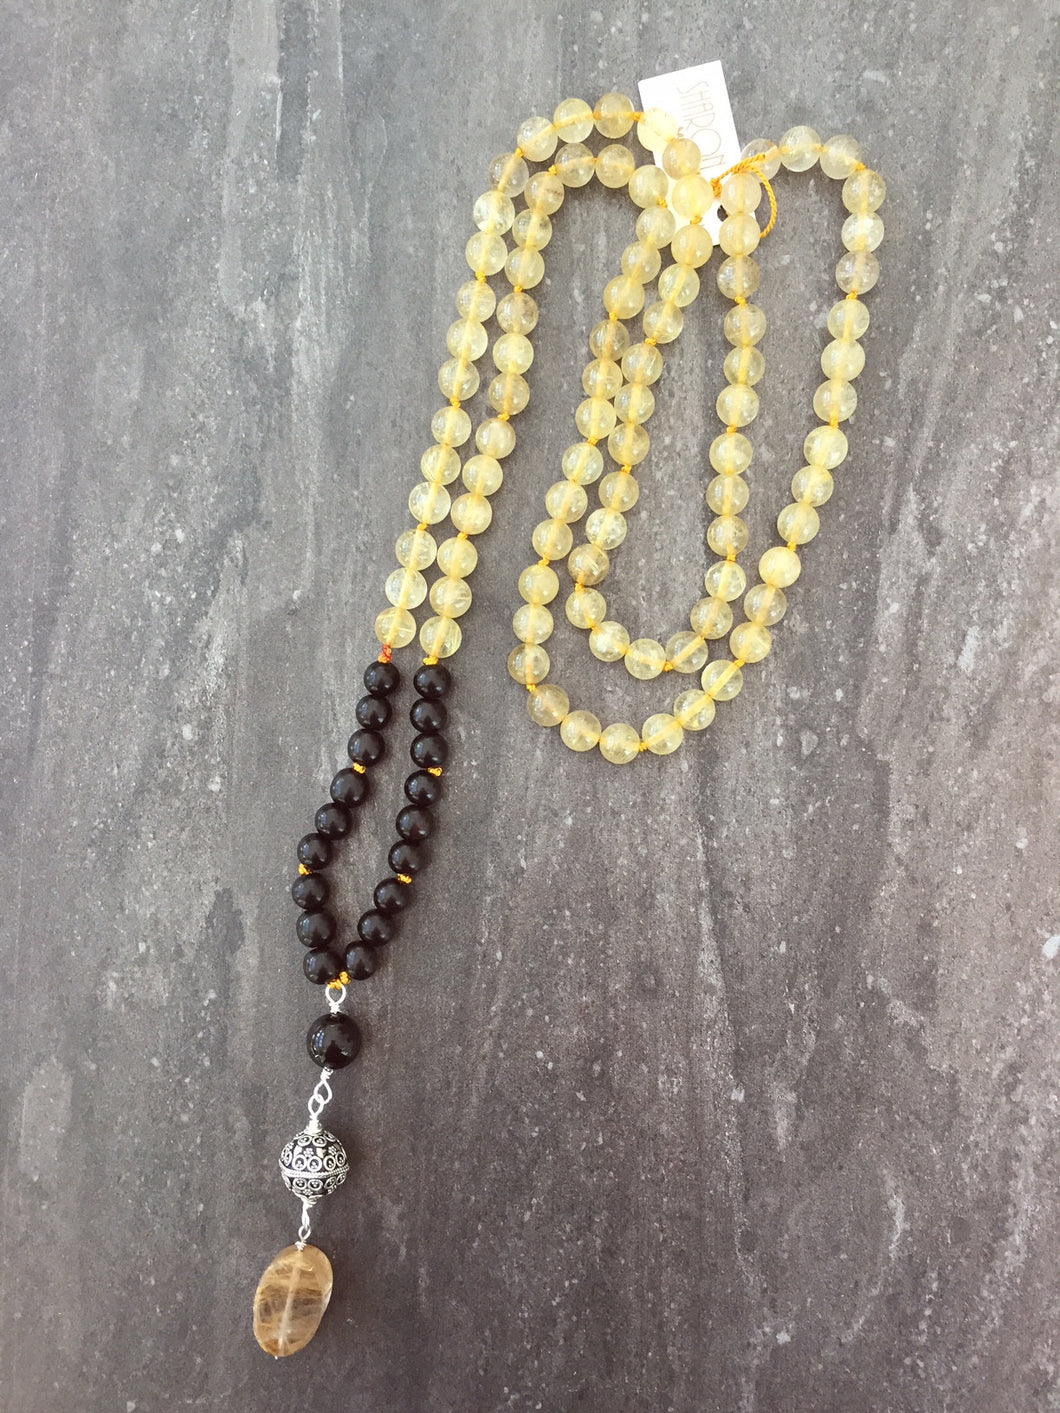 This Mala necklace is made of golden rutilated quartz, ebony wood, onyx,sterling silver and silk. It measures 18.5